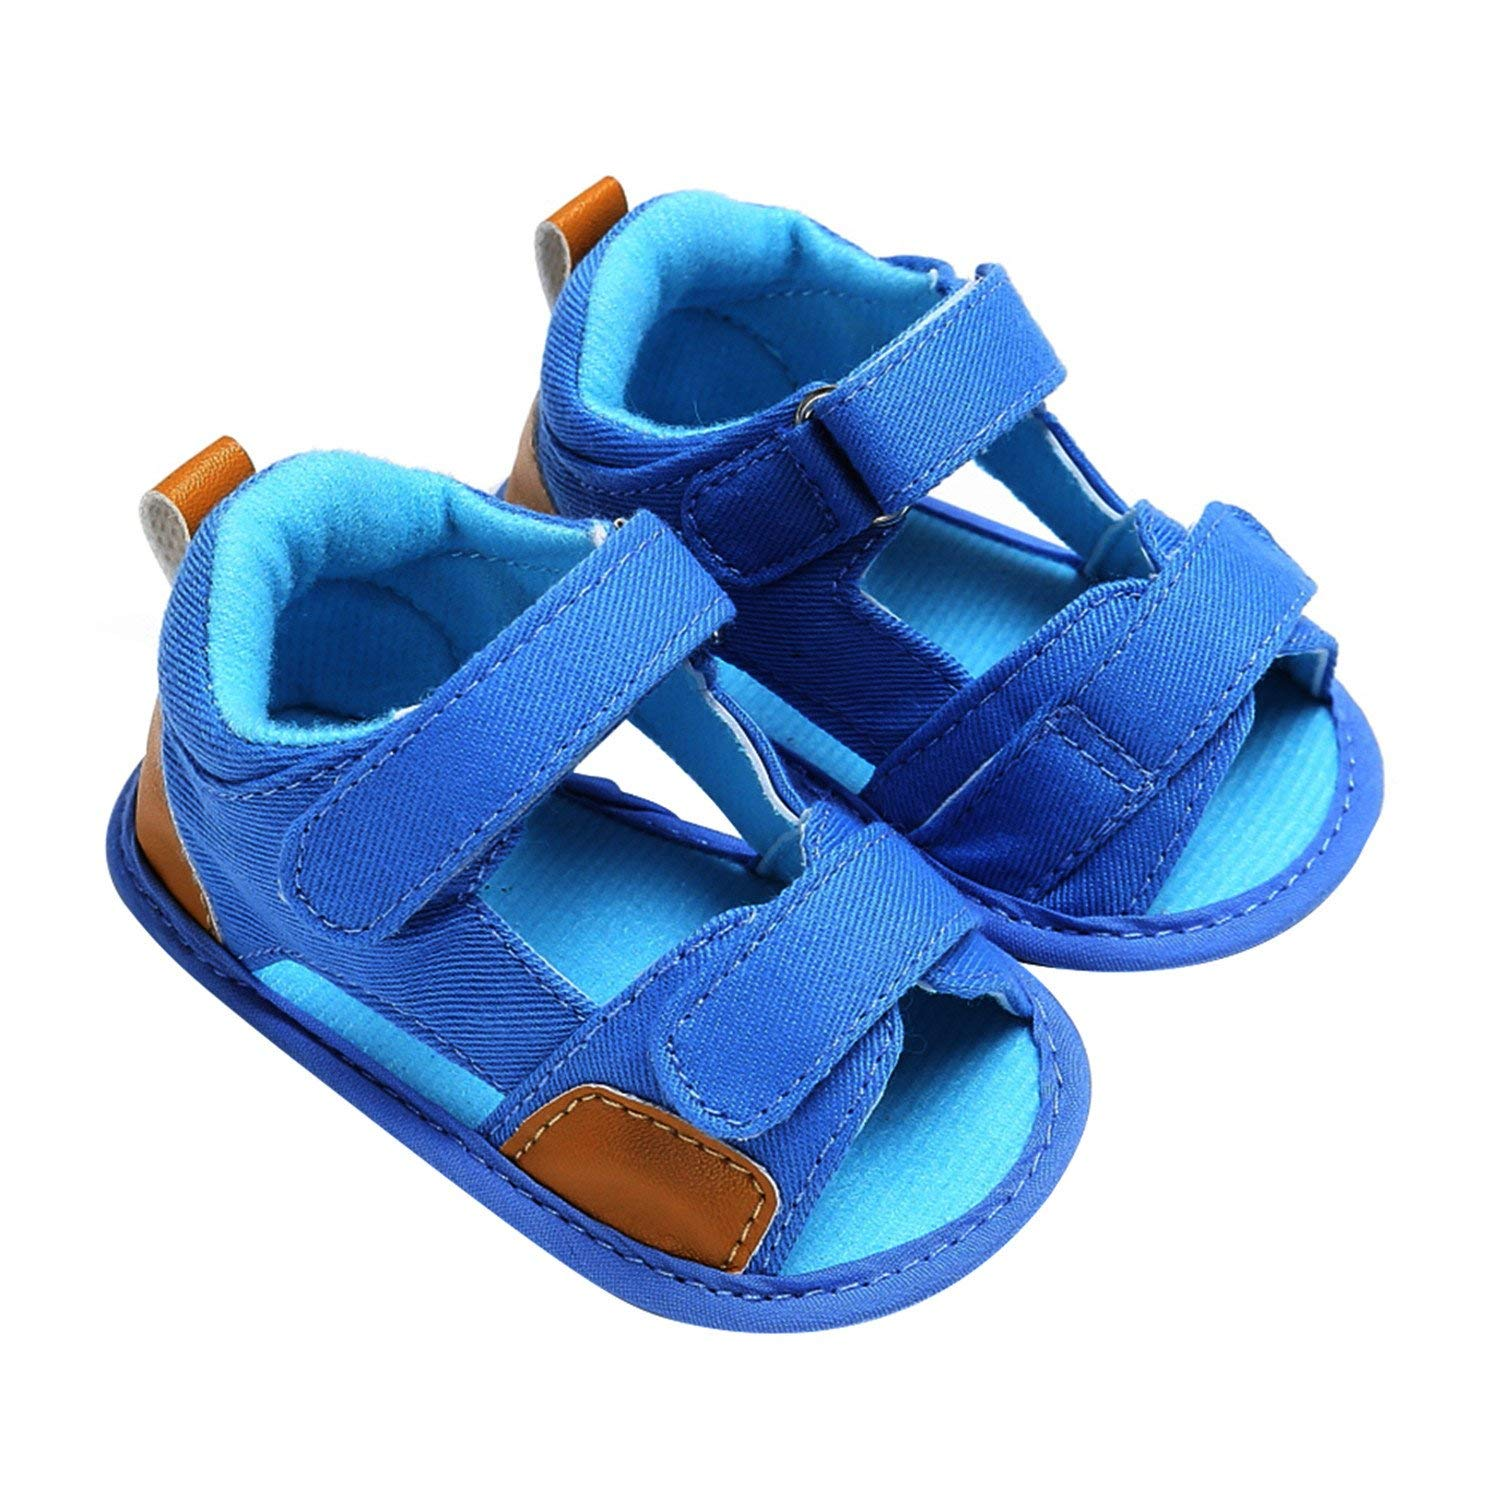 0 to 18 Months Baby Boys Sandals Summer Toddler Baby Boys Cute Canvas Shoes Soft Sole Prewalker Light Blue/Dark Blue